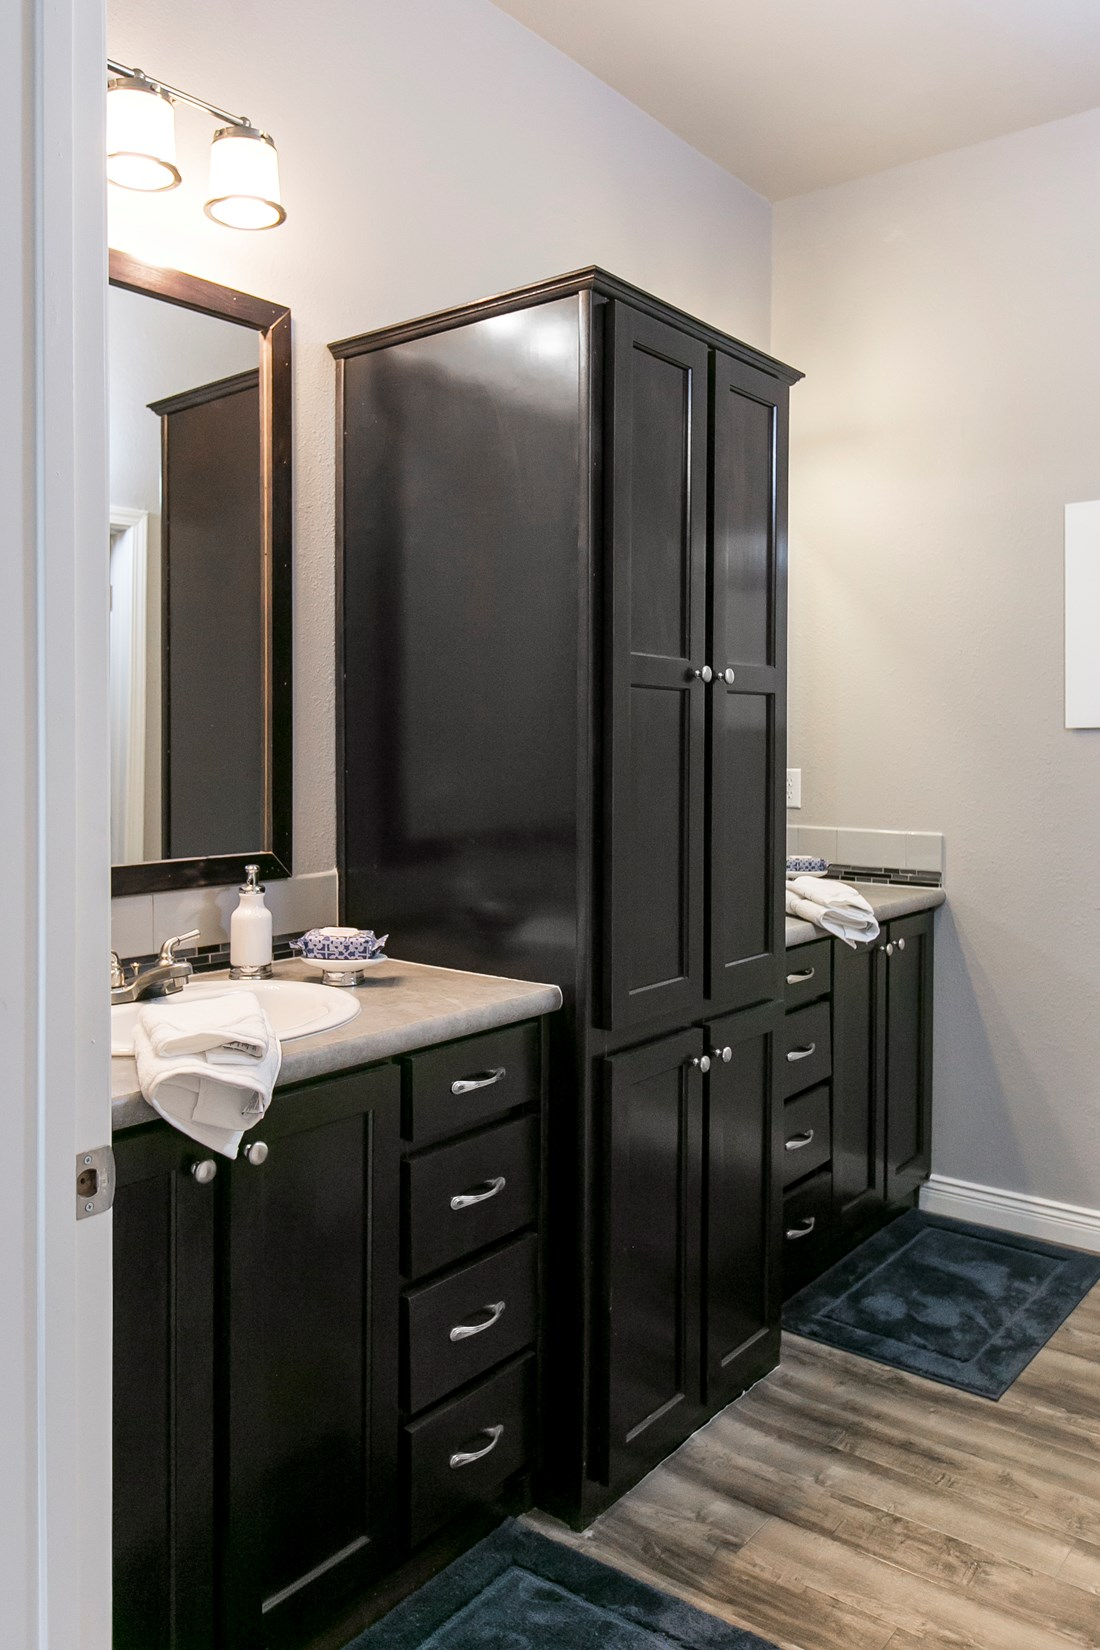 The GSP643K PLATINUM SERIES Guest Bathroom. This Manufactured Mobile Home features 3 bedrooms and 2 baths.